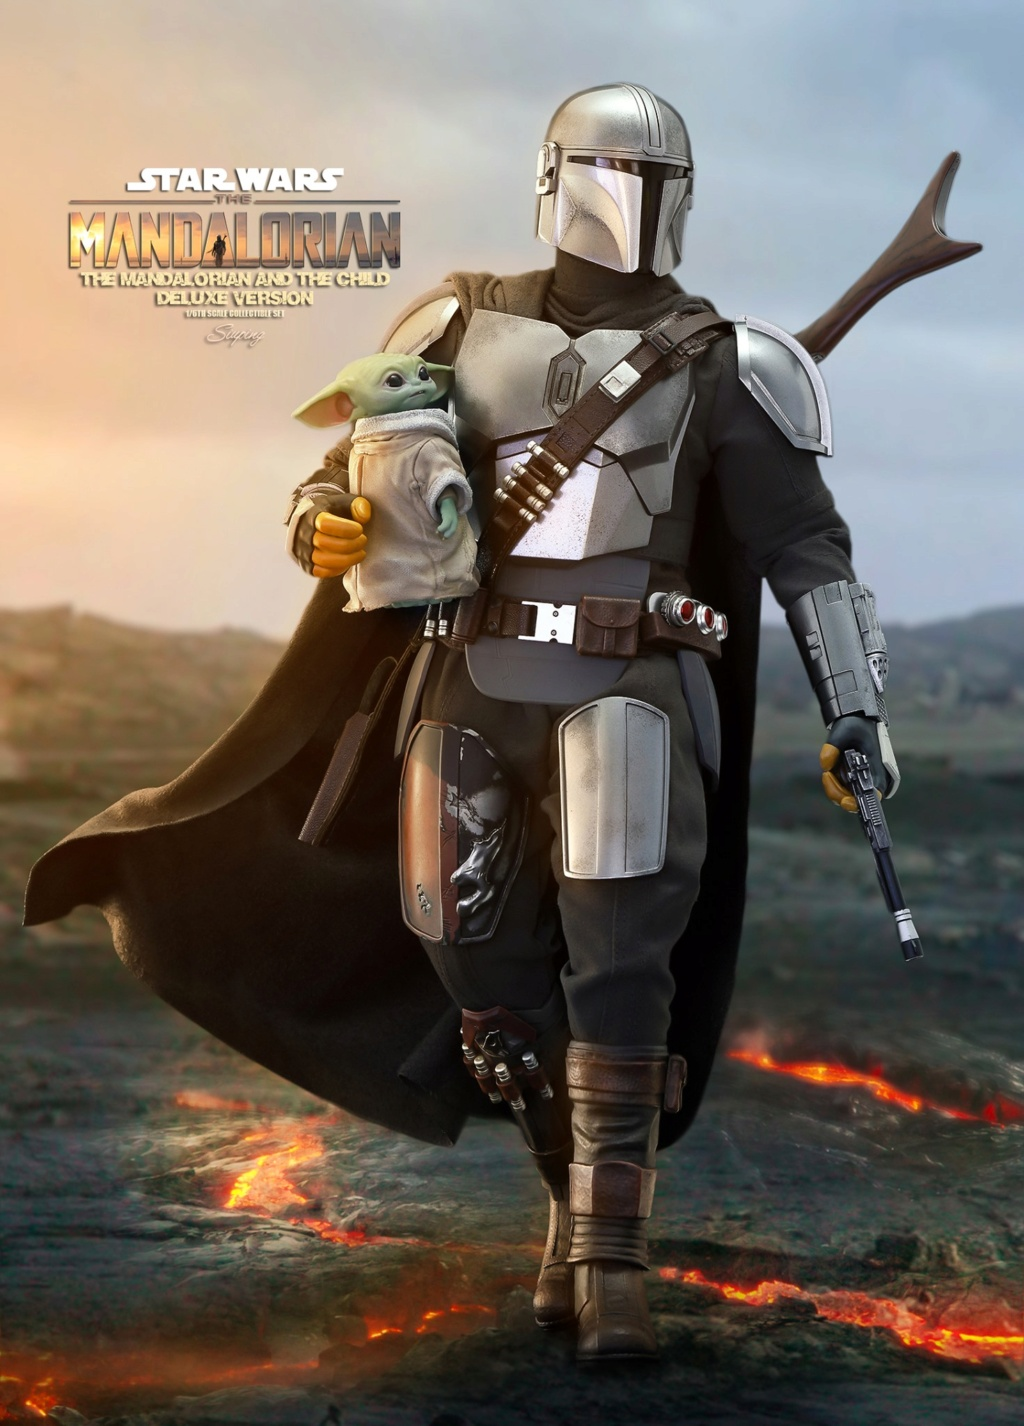 Sci-Fi - NEW PRODUCT: HOT TOYS: THE MANDALORIAN THE MANDALORIAN AND THE CHILD 1/6TH SCALE COLLECTIBLE SET (Standard and Deluxe) 14e6a010